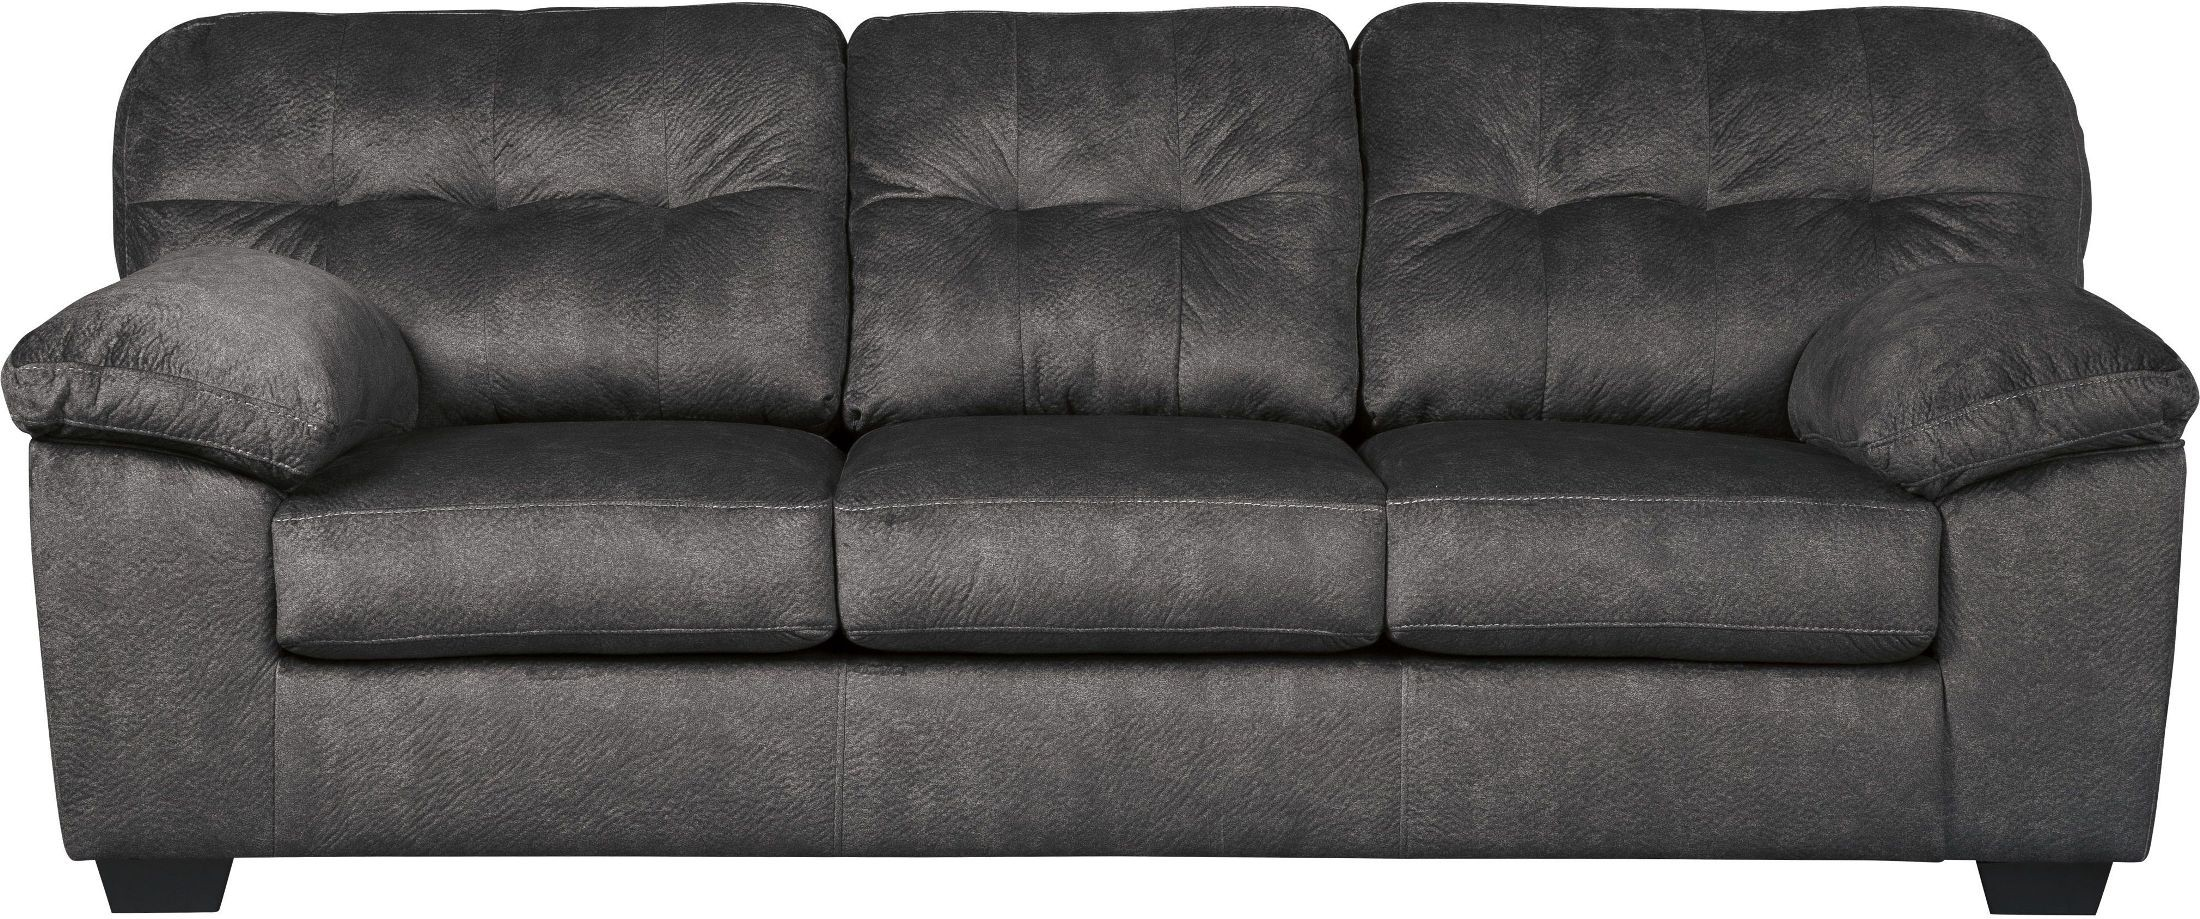 Accrington Granite Queen Sofa Sleeper Easy To Lift